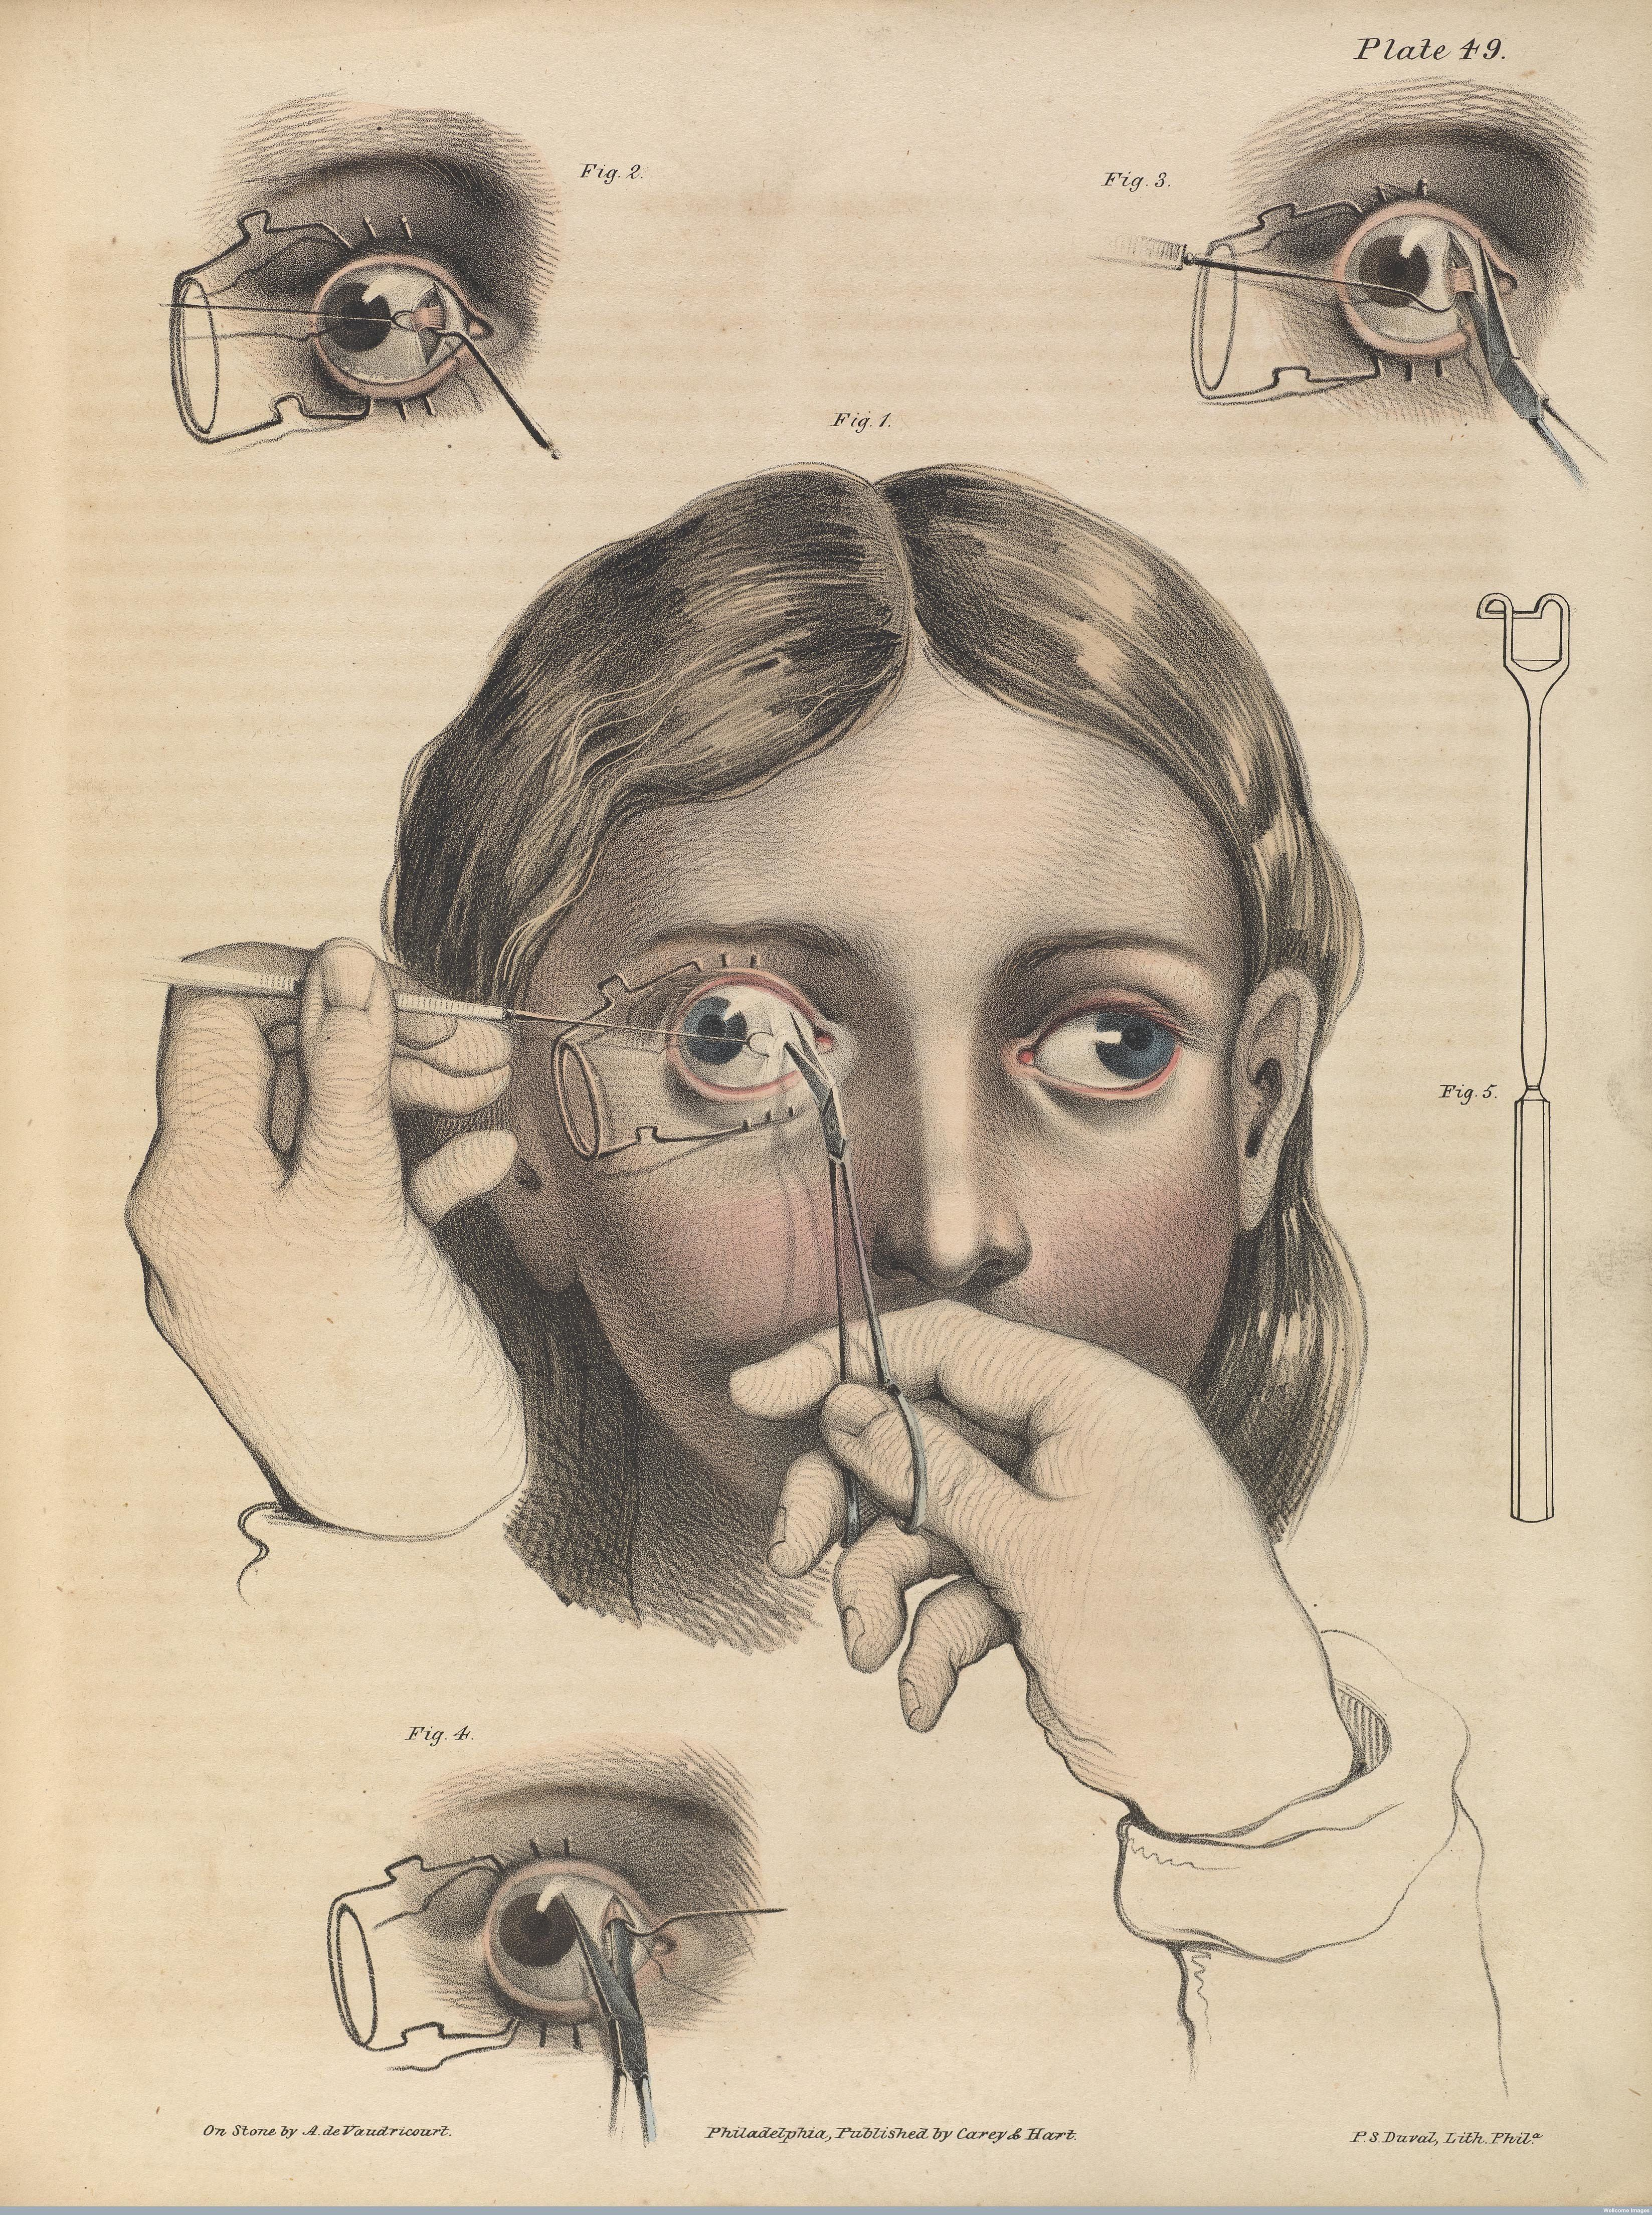 Eye surgery to correct strabismus, a misalignment of the eyes, 1846.